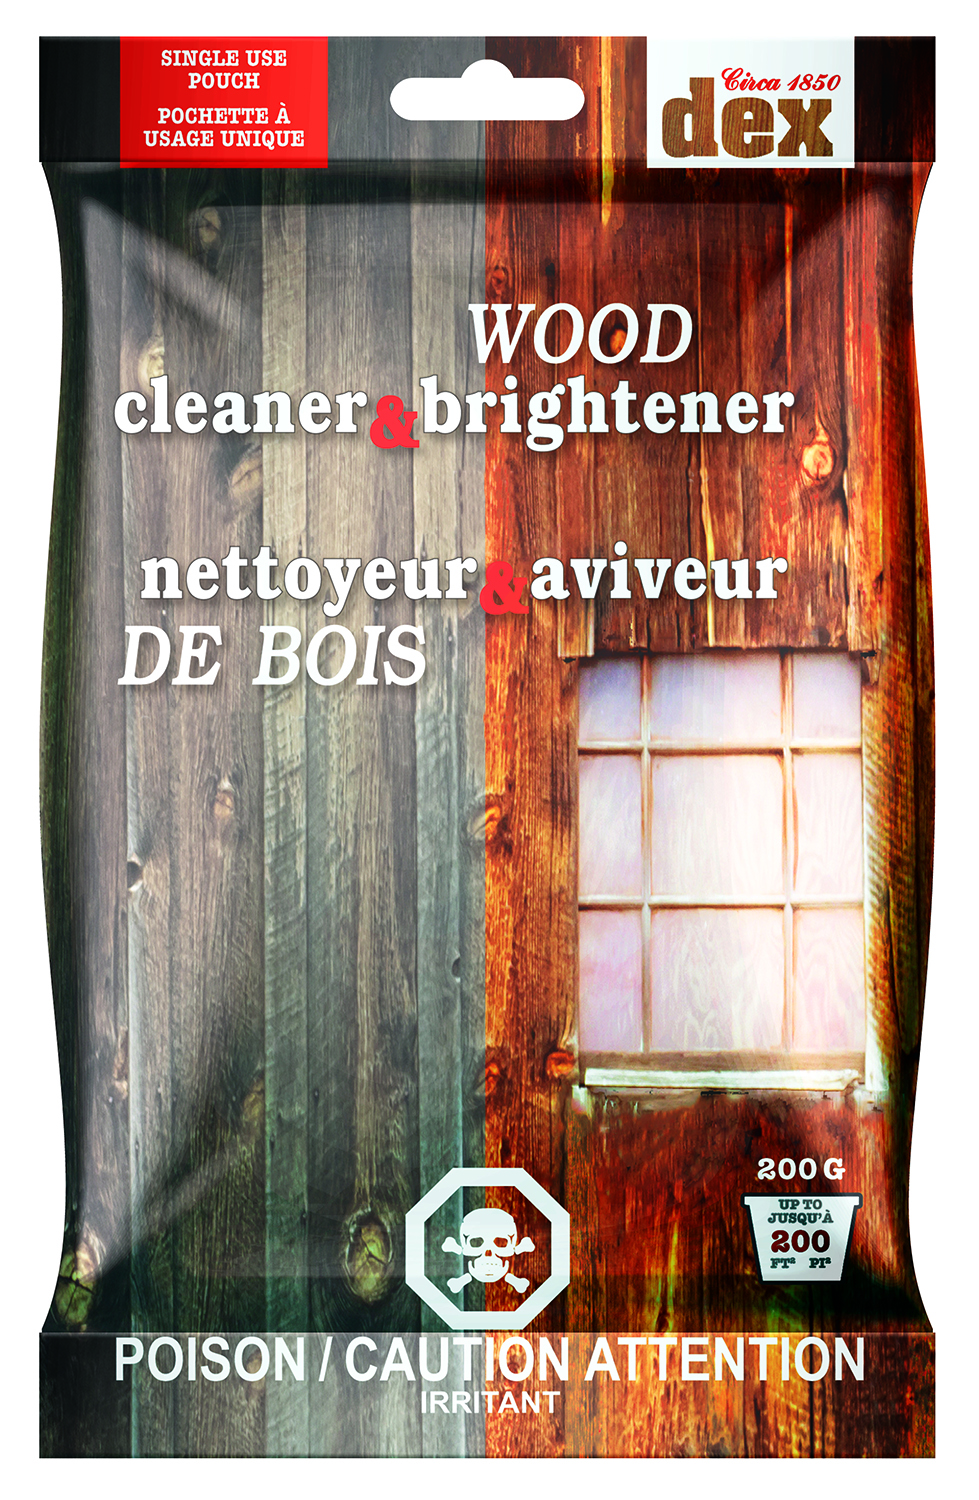 Circa 1850 DEX<br>Wood Cleaner & Brightener